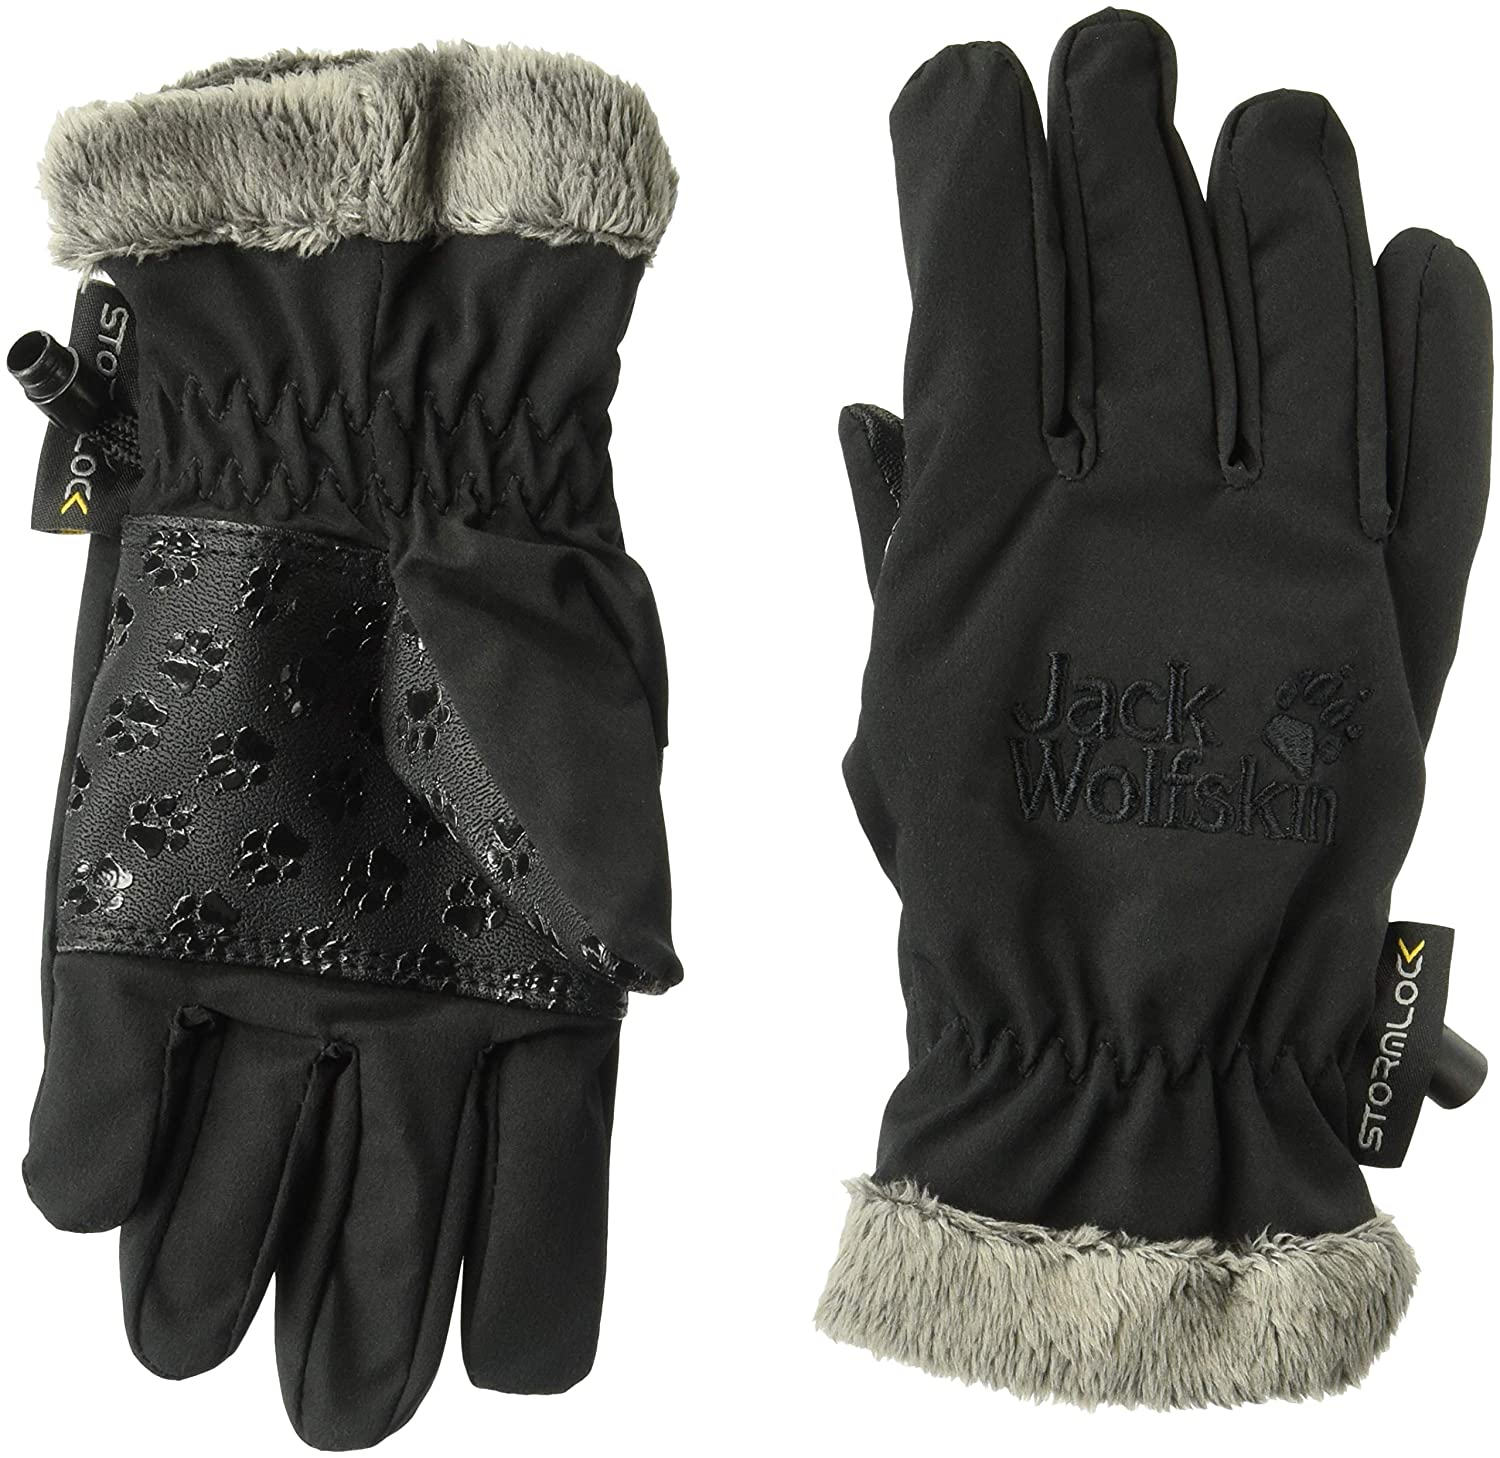 Jack Wolfskin Softshell High Loft Kids Windproof Insulated Softshell Gloves Jack Wolfskin Domestic